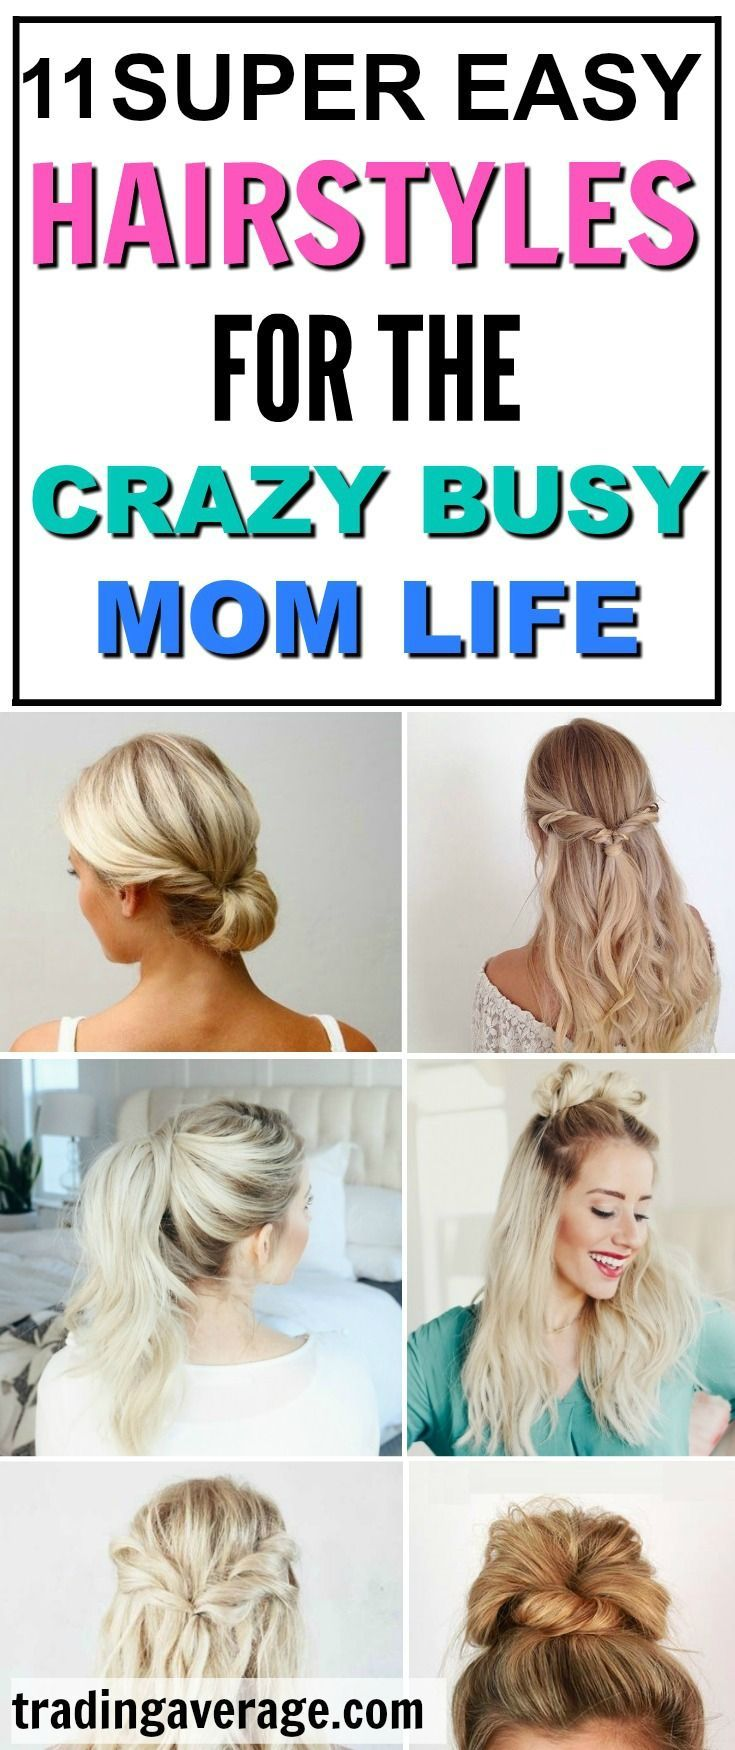 super easy hairstyles for everyday life easy hairstyles super